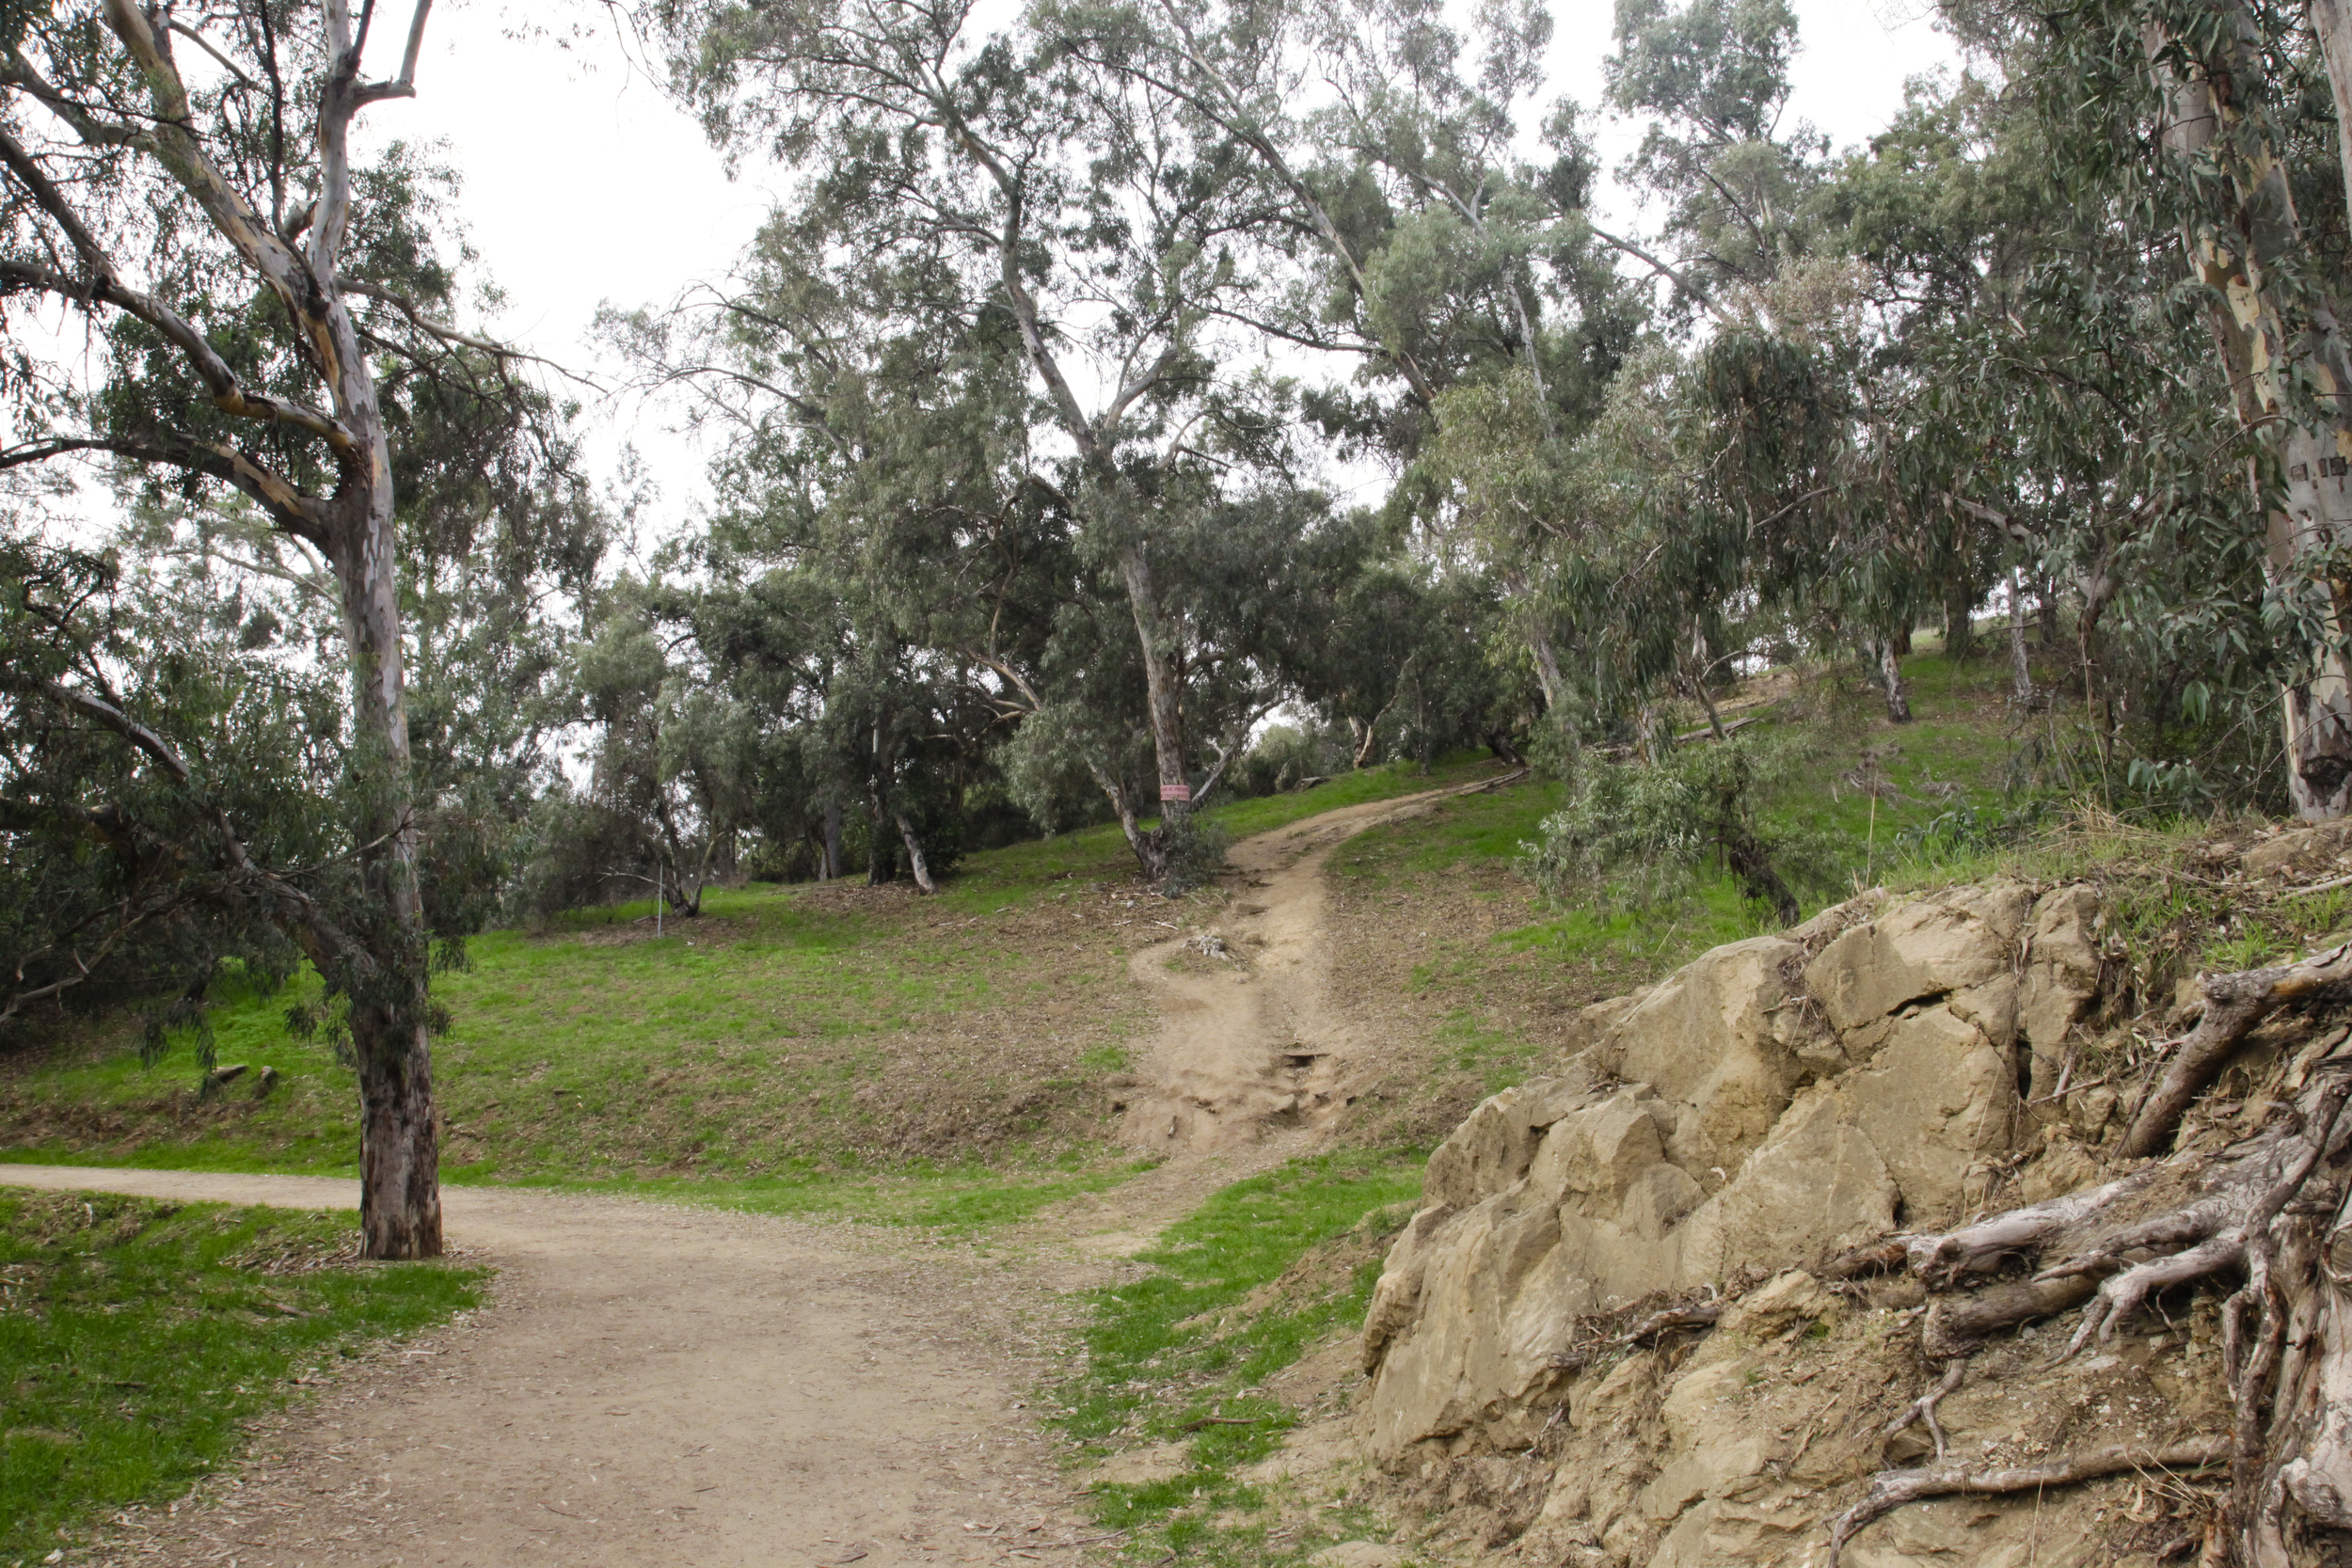 Eucalyptus Carvers: A public art intervention in Elysian Park, 1